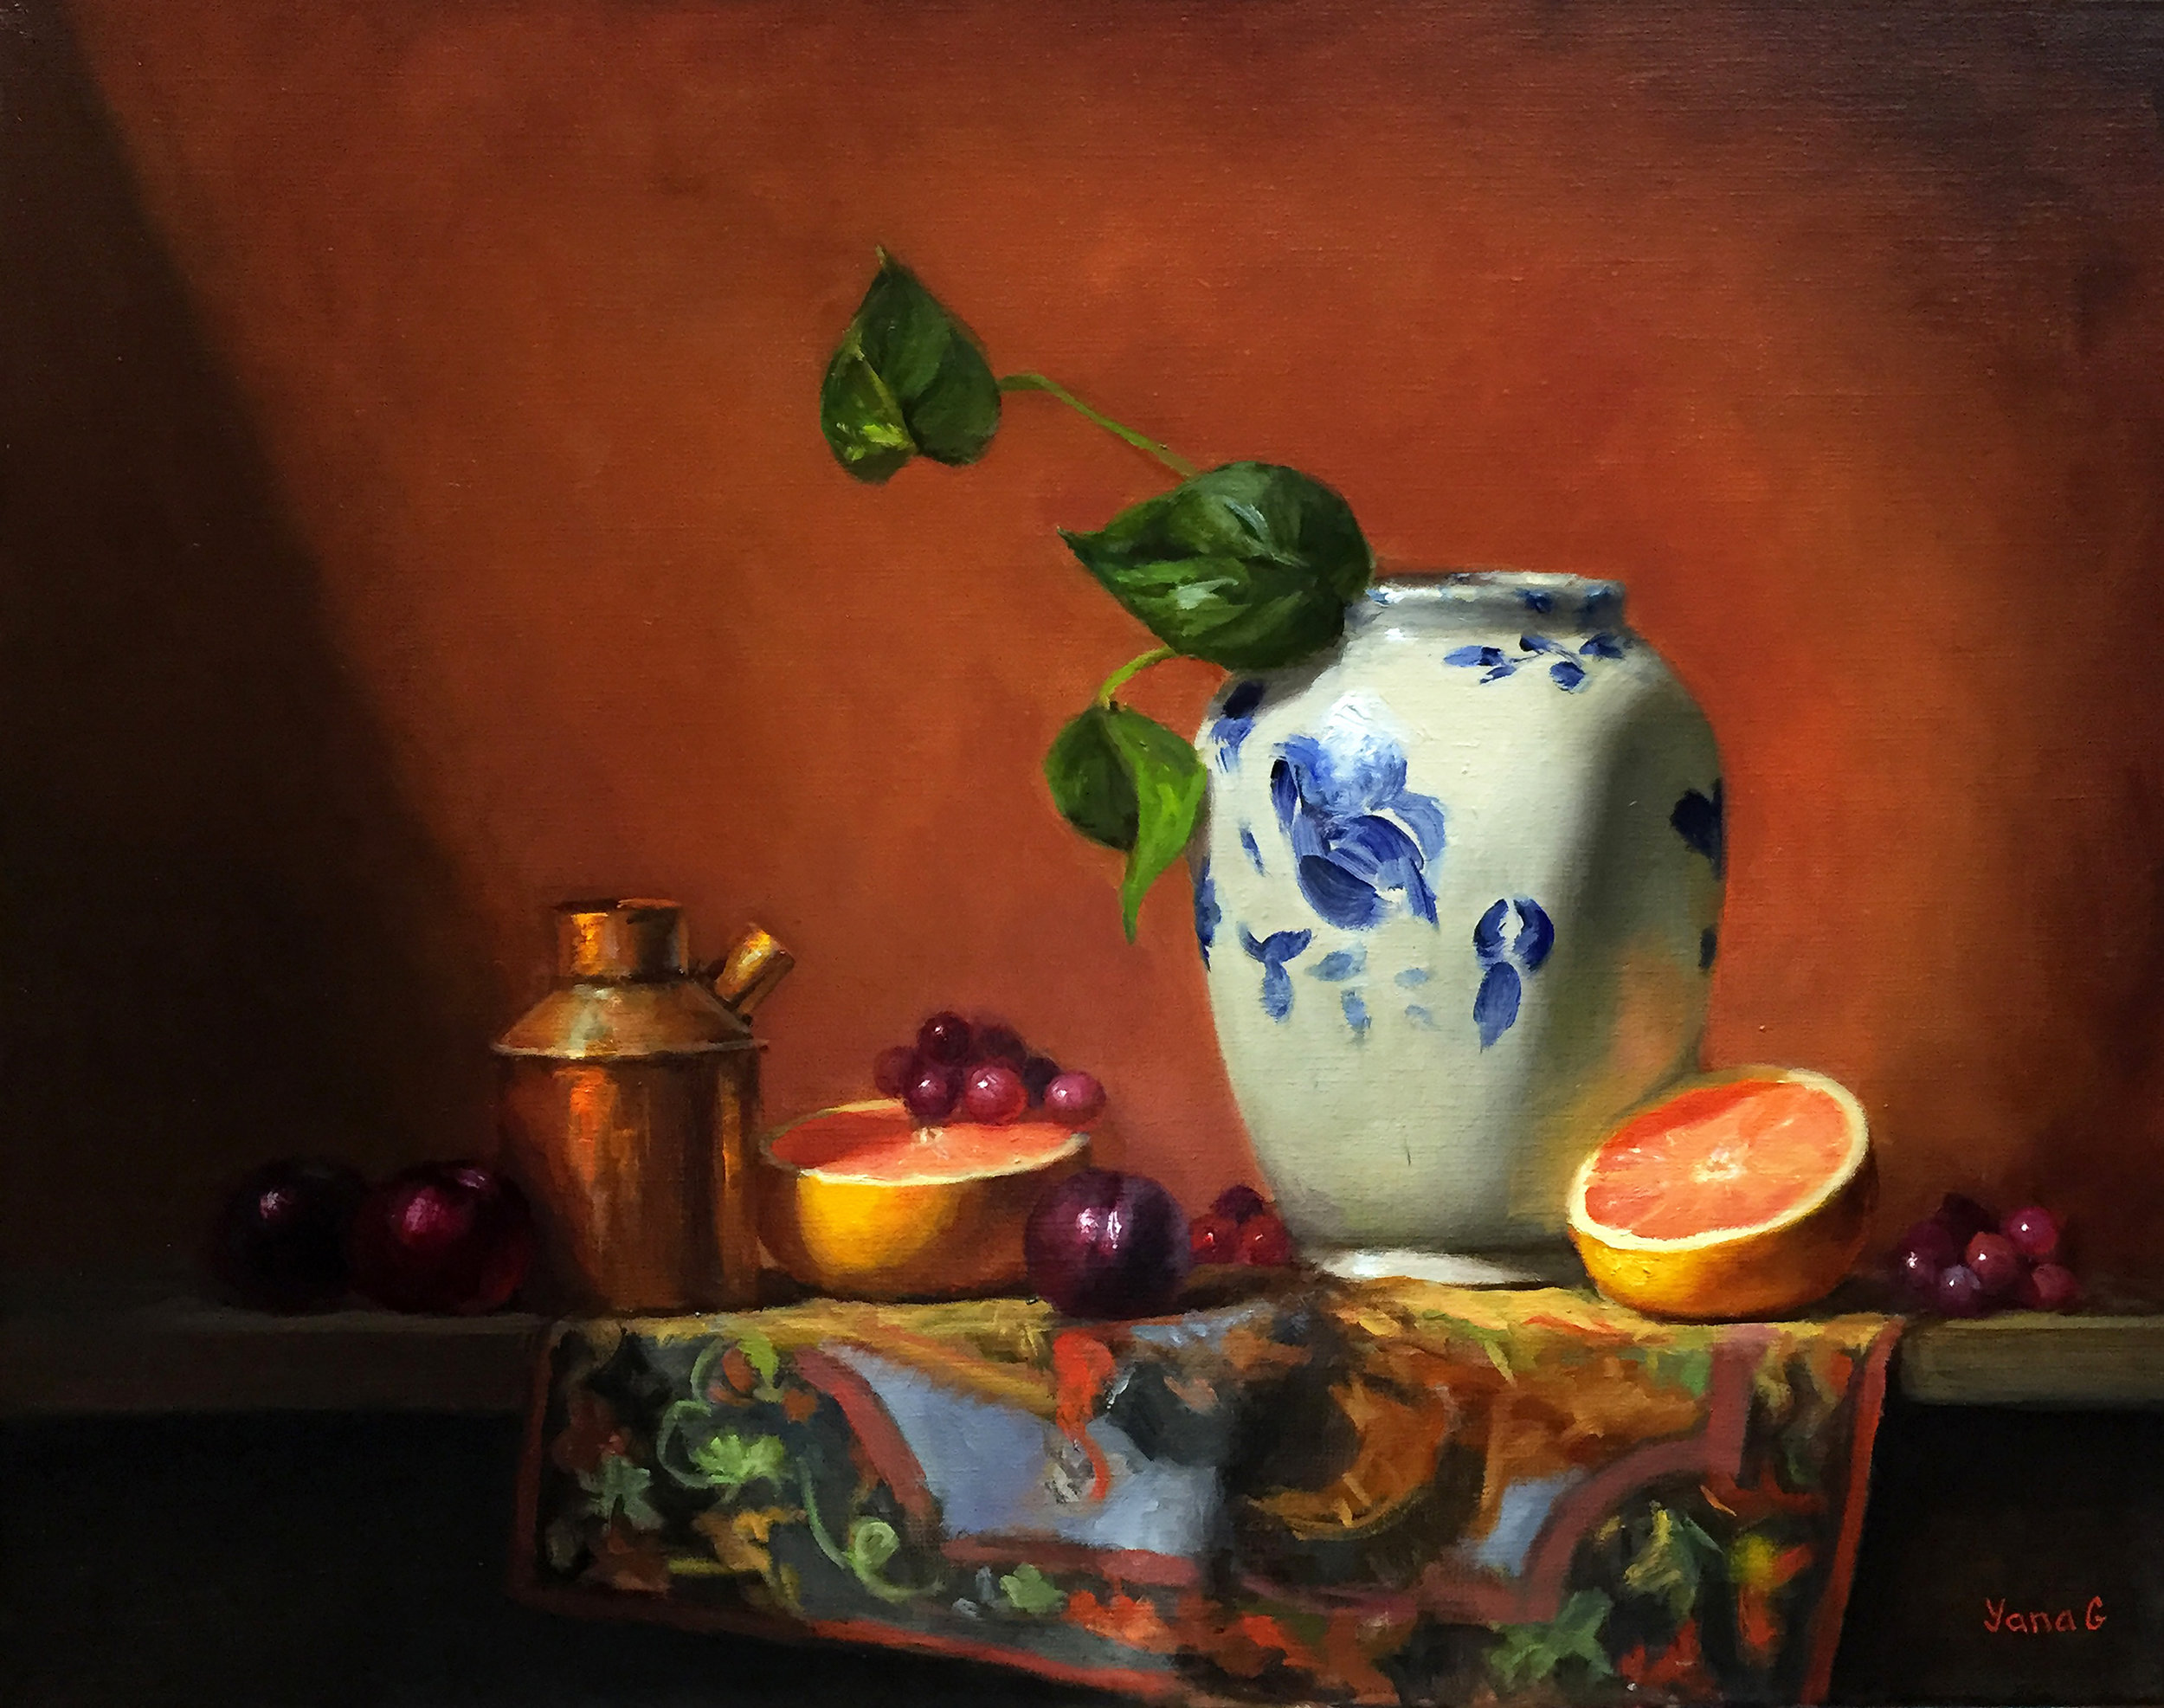 Still life with Chinese Vase and Grapefruit. Oil on linen. 16*20in